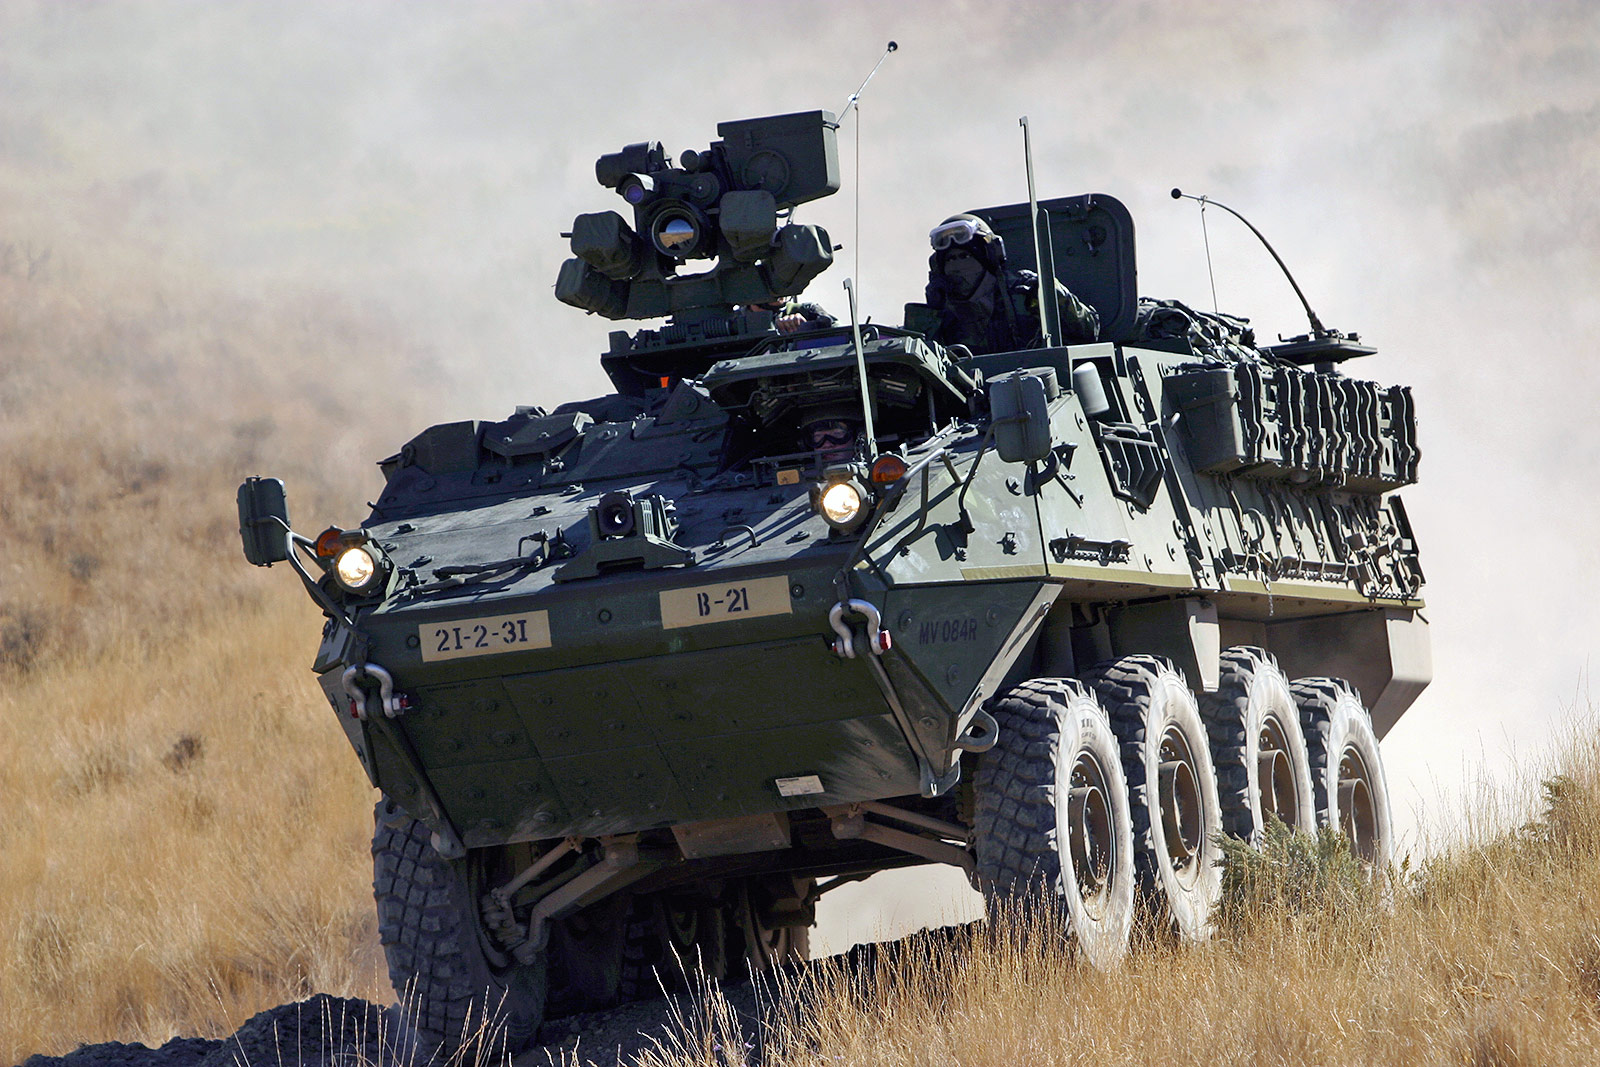 Add-on Armour - US Army Stryker Family of Vehicles